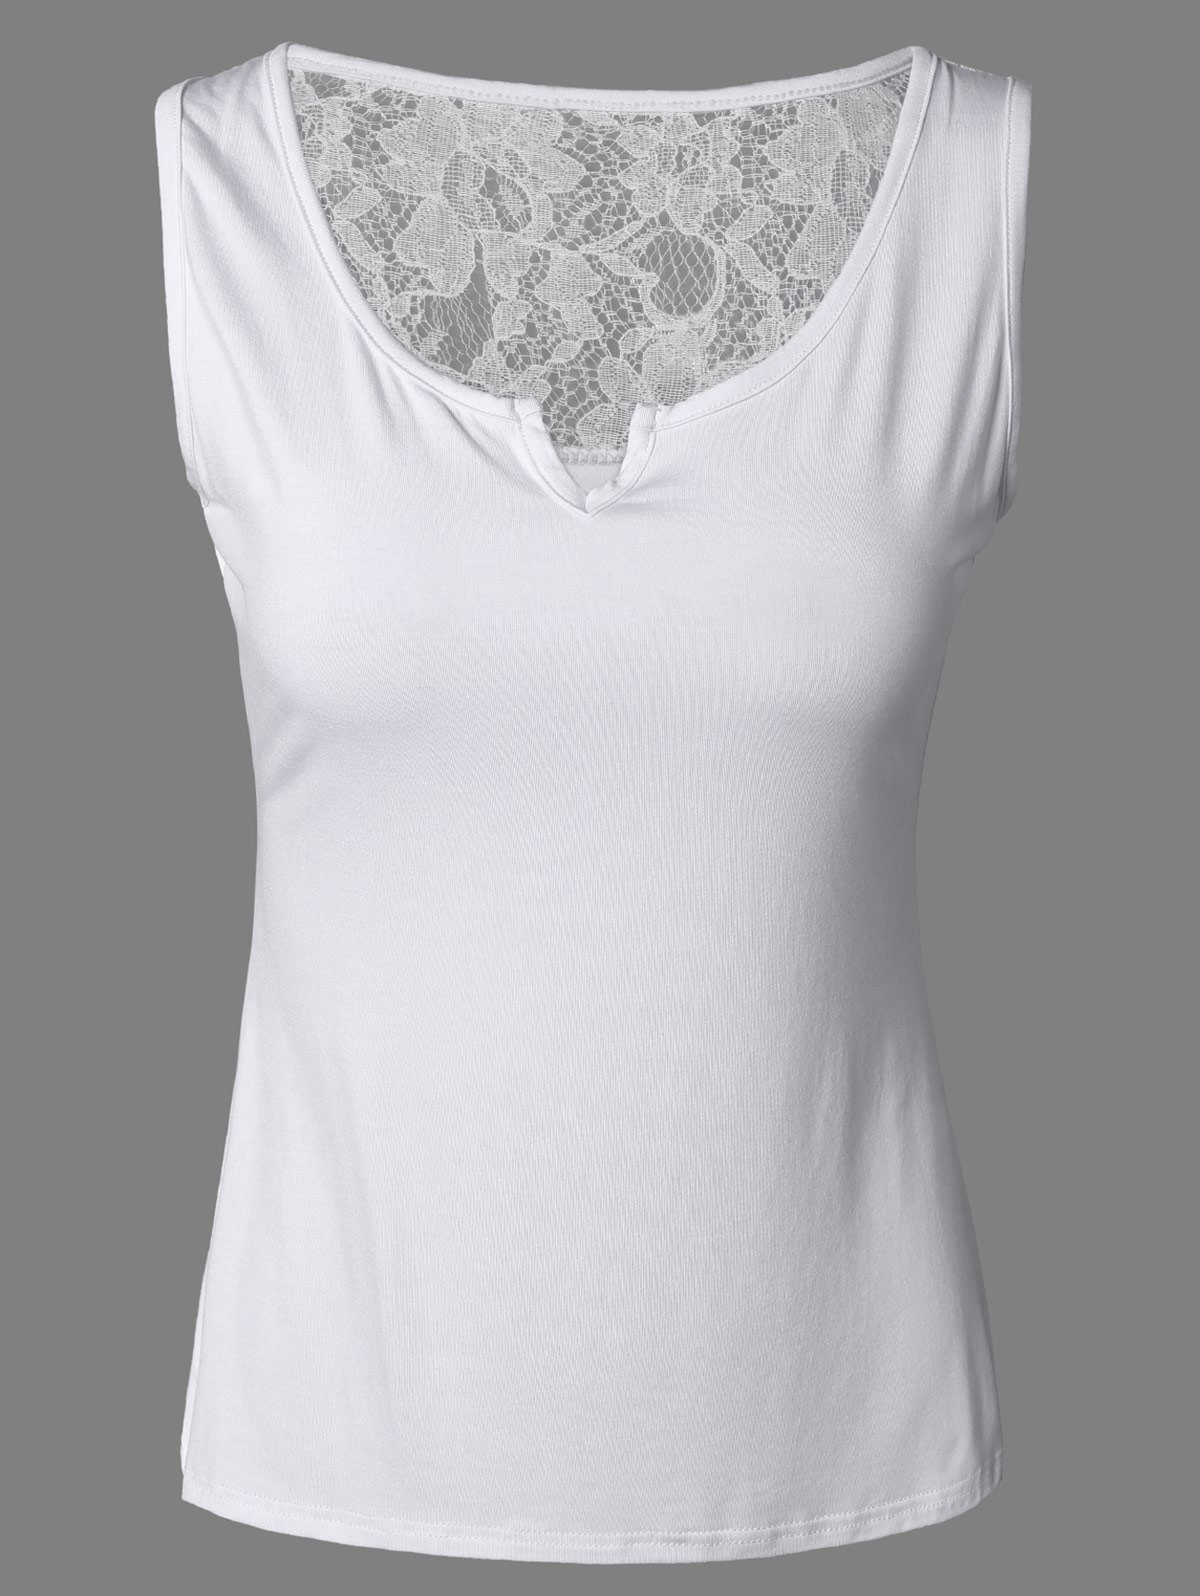 Brief Pure Color Lace Tank Top For Women - WHITE XL